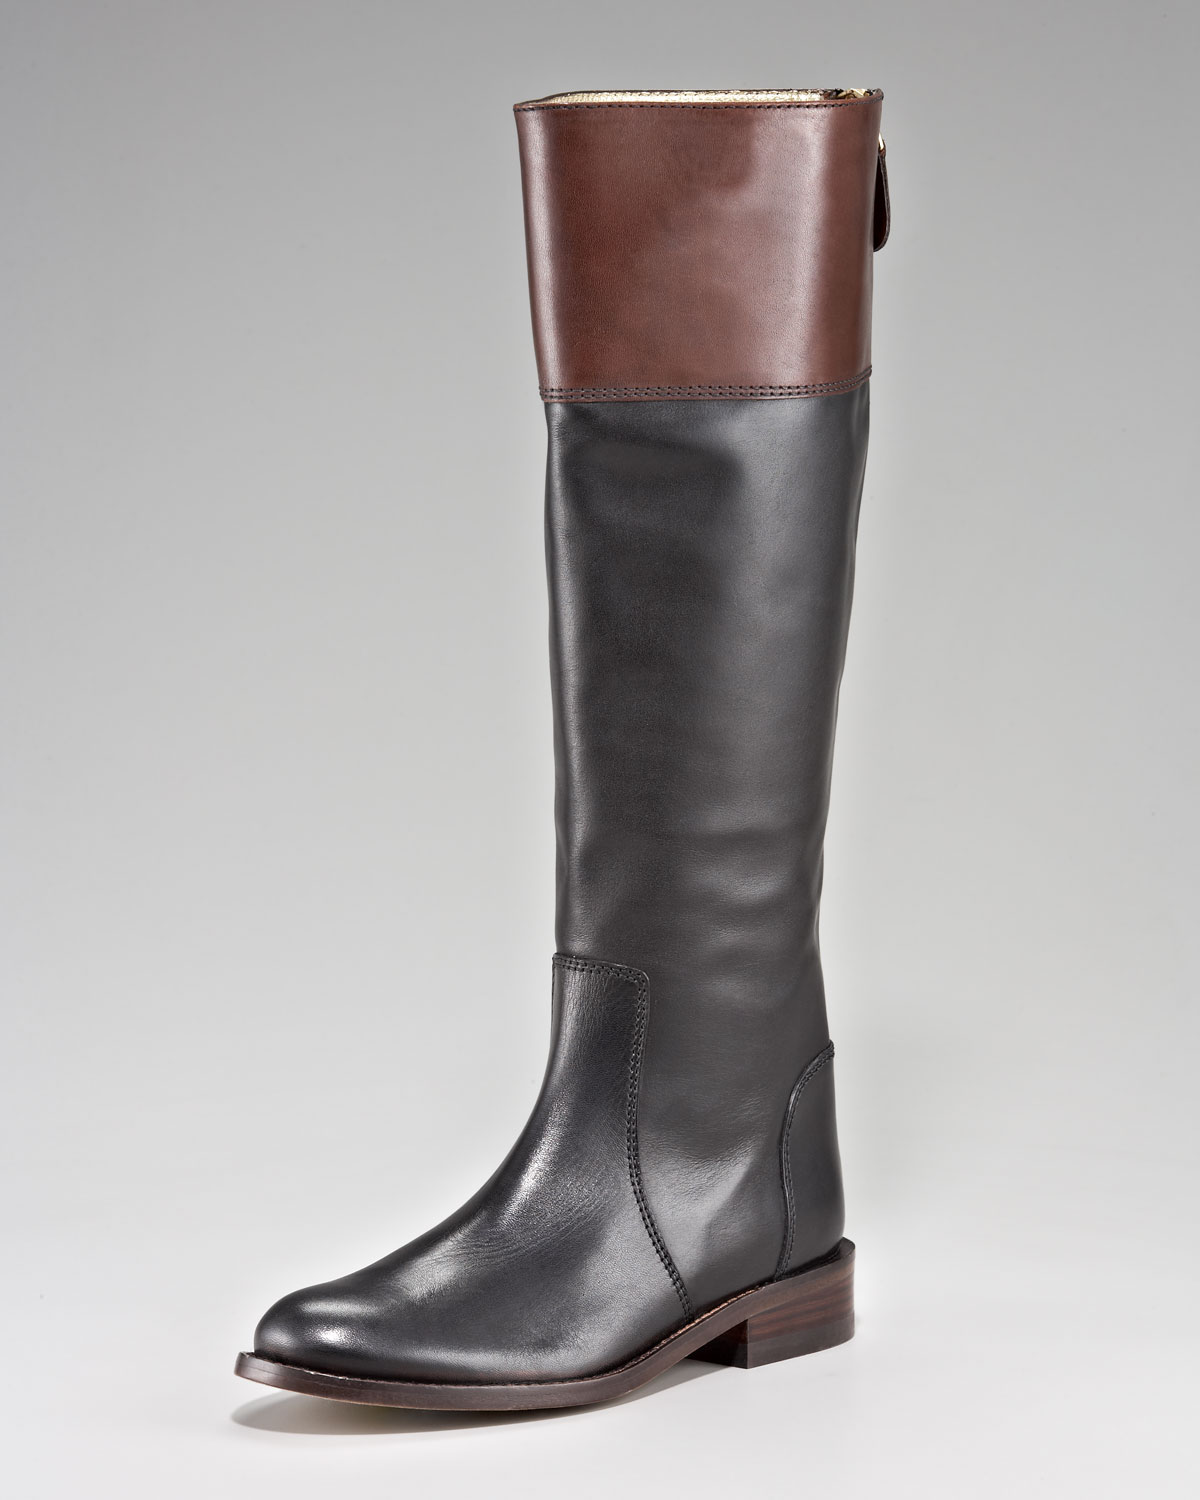 Juicy Couture Reston Two Tone Riding Boot In Black Lyst